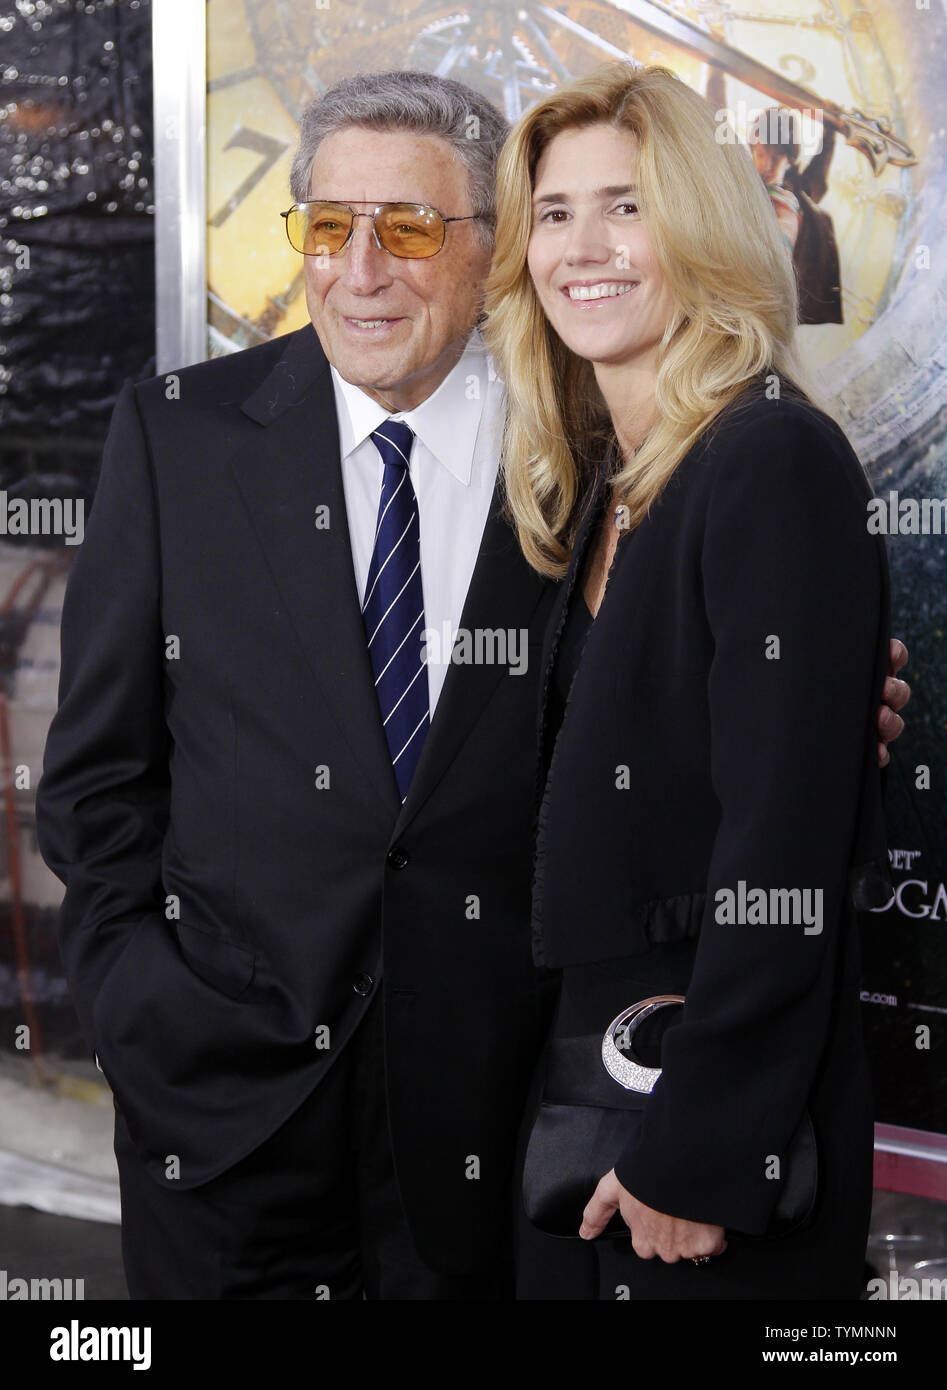 Tony Bennett and Susan Crow arrive on the carpet for the Hugo World Premiere at the Ziegfeld Theater in New York City on November 21, 2011.     UPI/John Angelillo - Stock Image